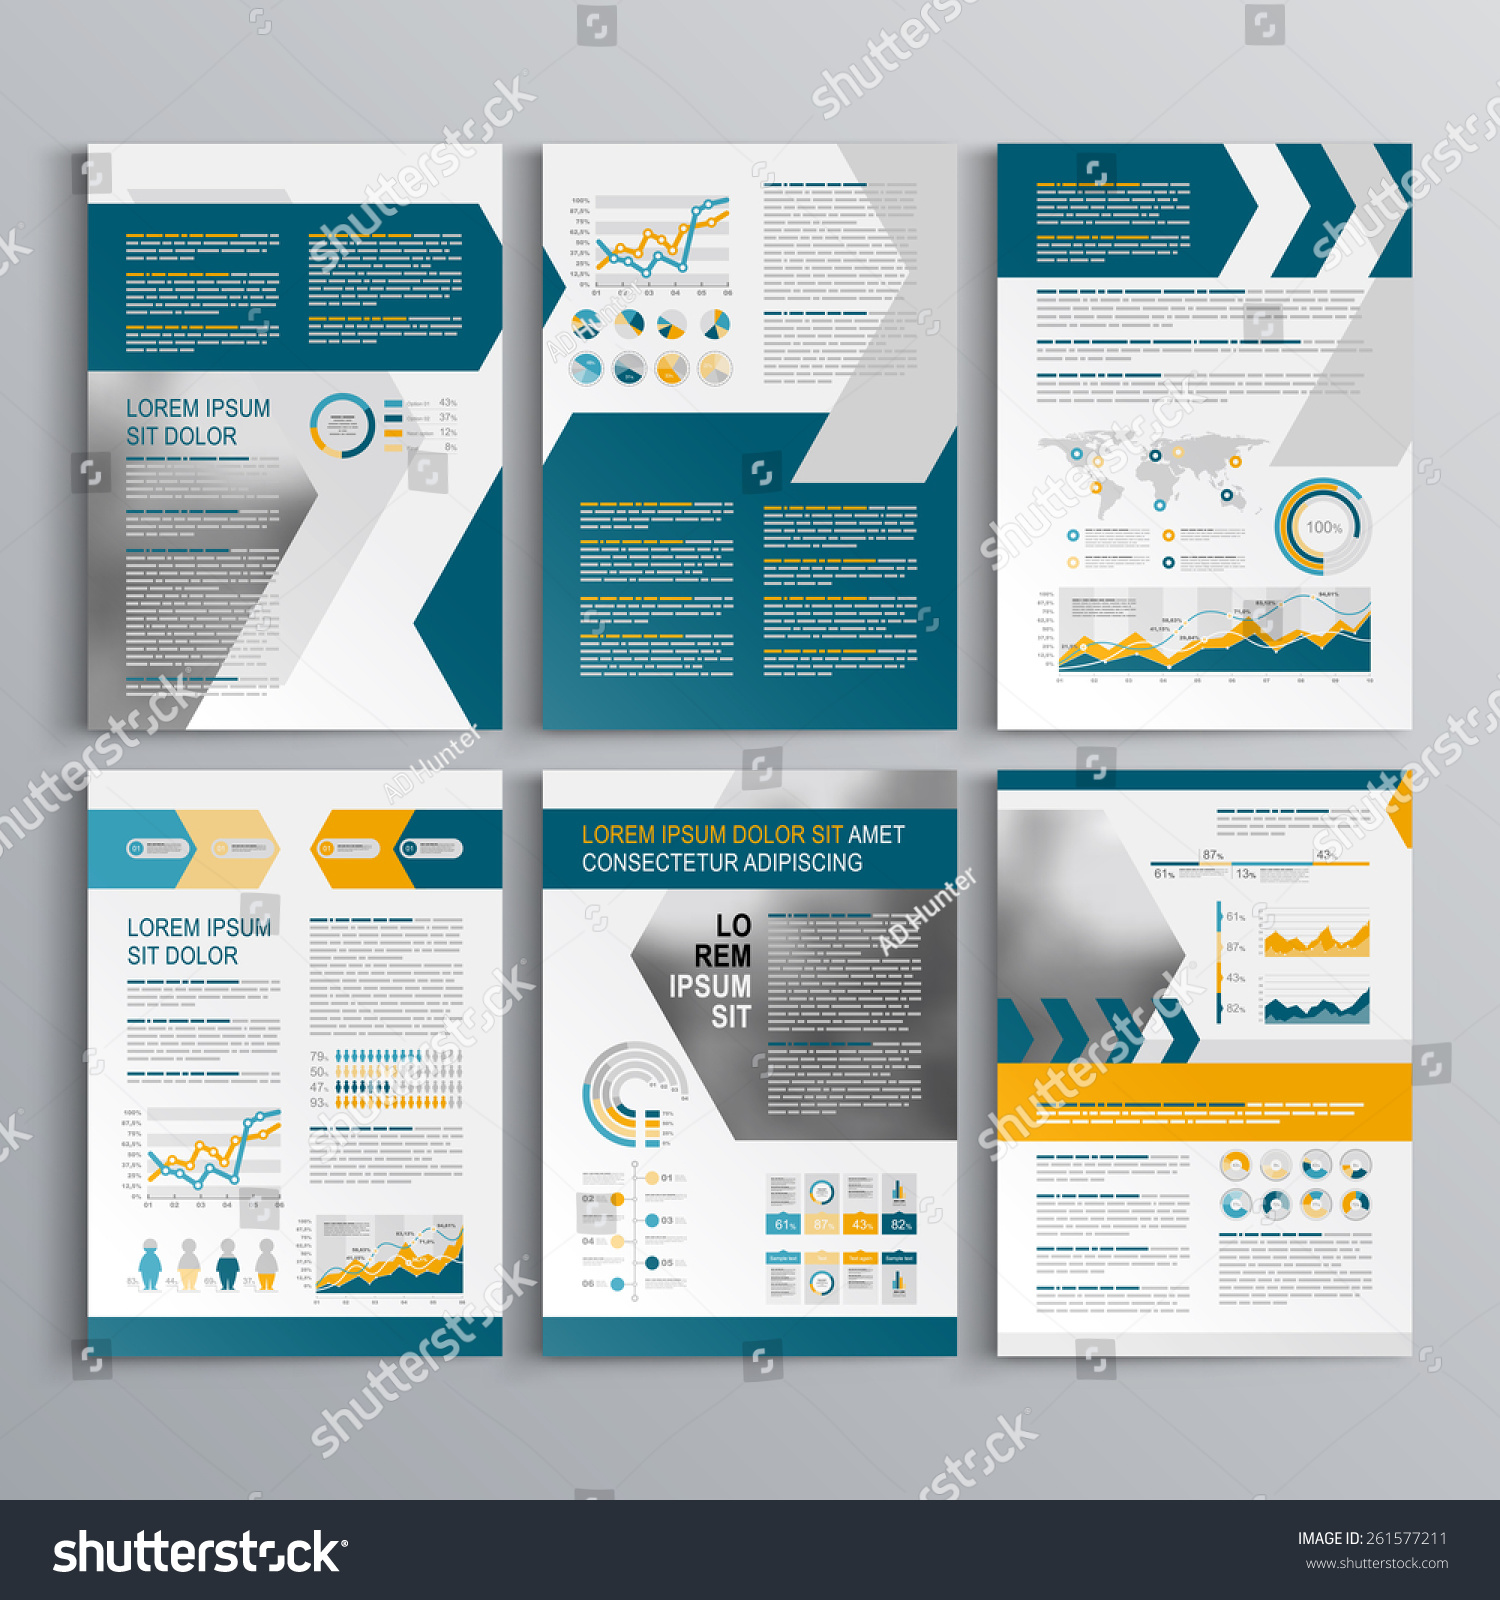 Generous 1 Page Resumes Tall 1 Week Calendar Template Regular 1099 Agreement Template 11 Vuze Search Templates Youthful 15 Year Old Resume Example Coloured2 Week Notice Templates Dynamic Brochure Template Design Yellow Blue Stock Vector ..